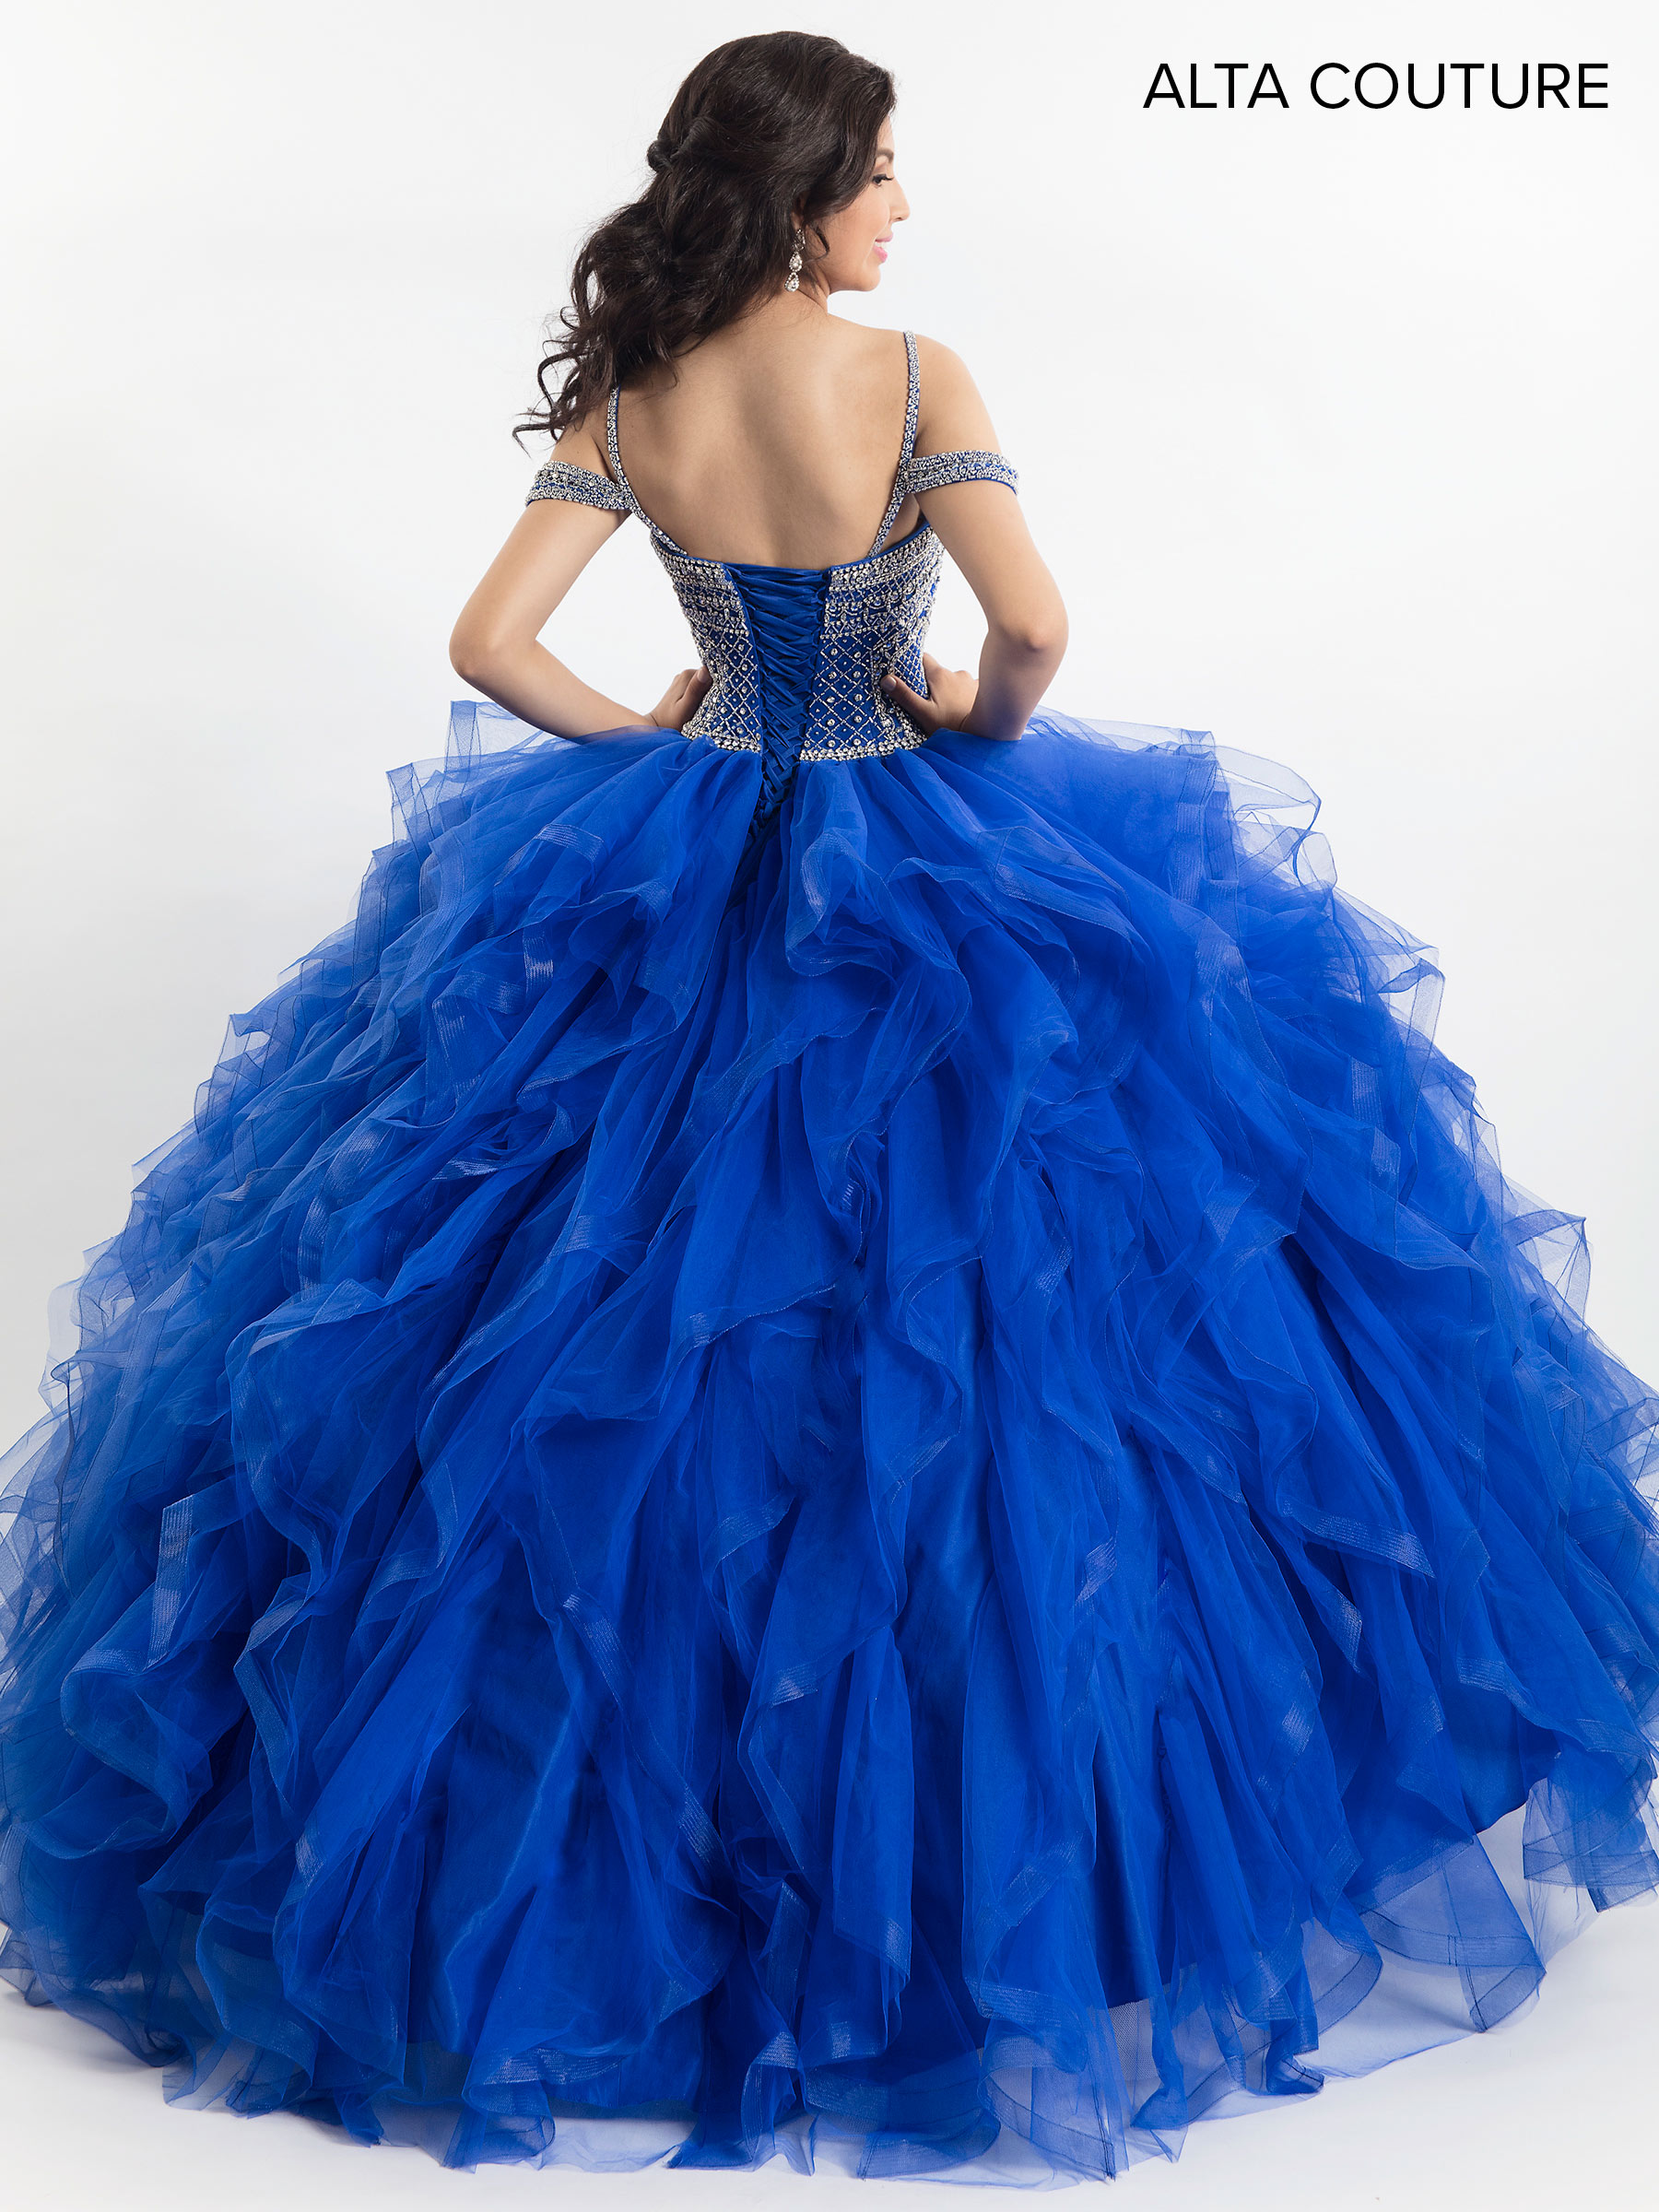 Quinceanera Couture Dresses | Alta Couture | Style - MQ3009